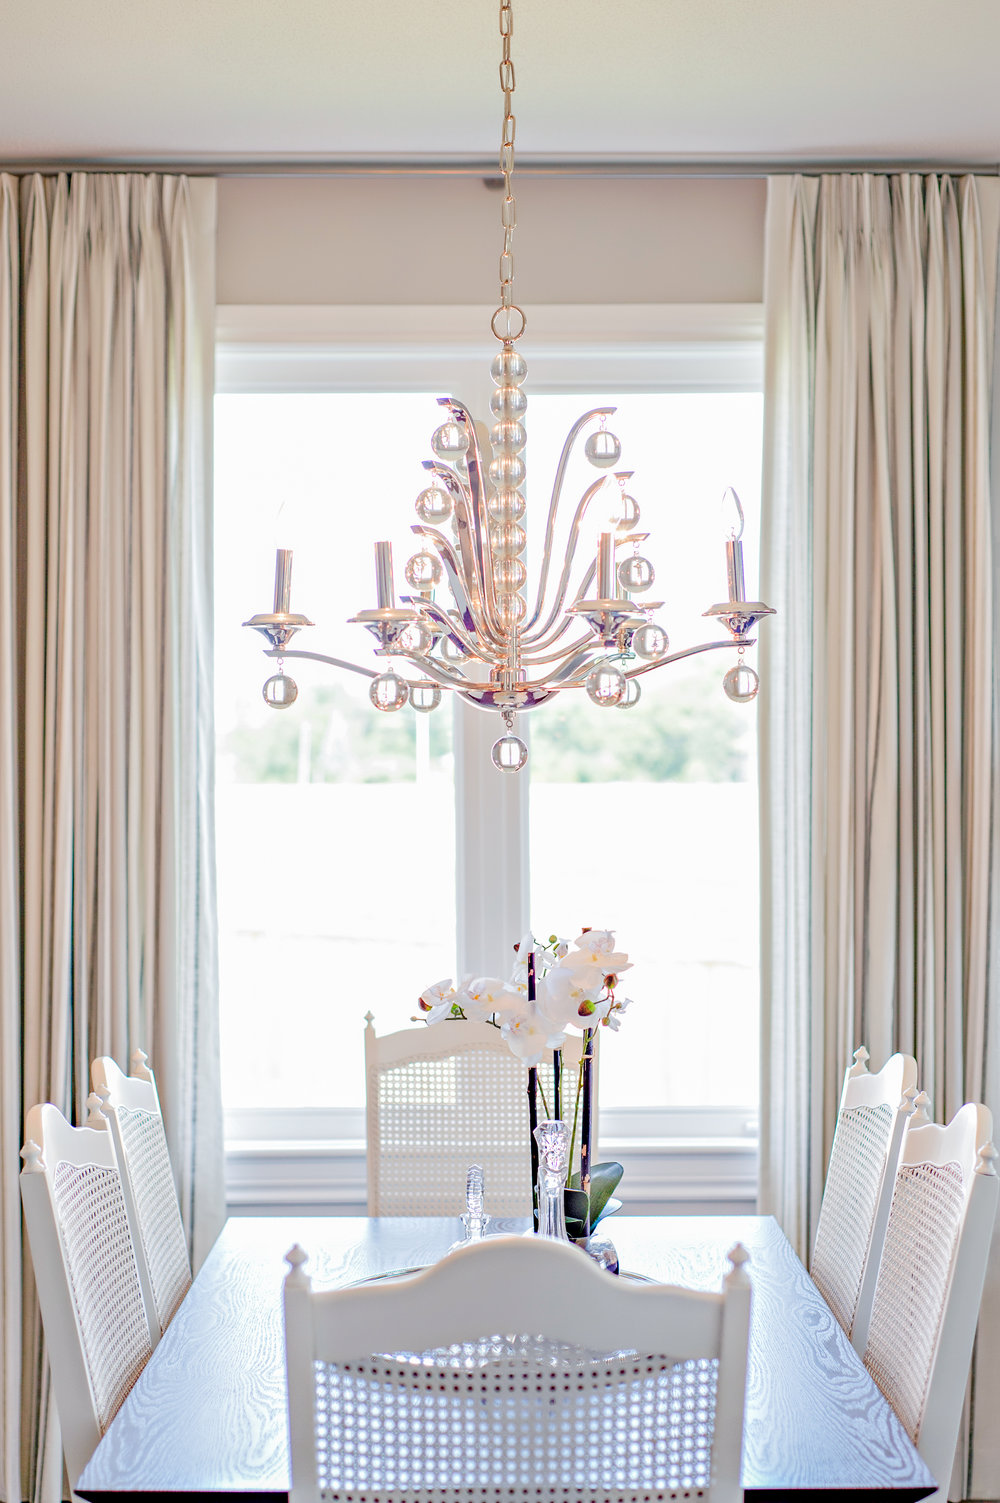 Interior-Design-Dining-Room-Table-White-Chandelier